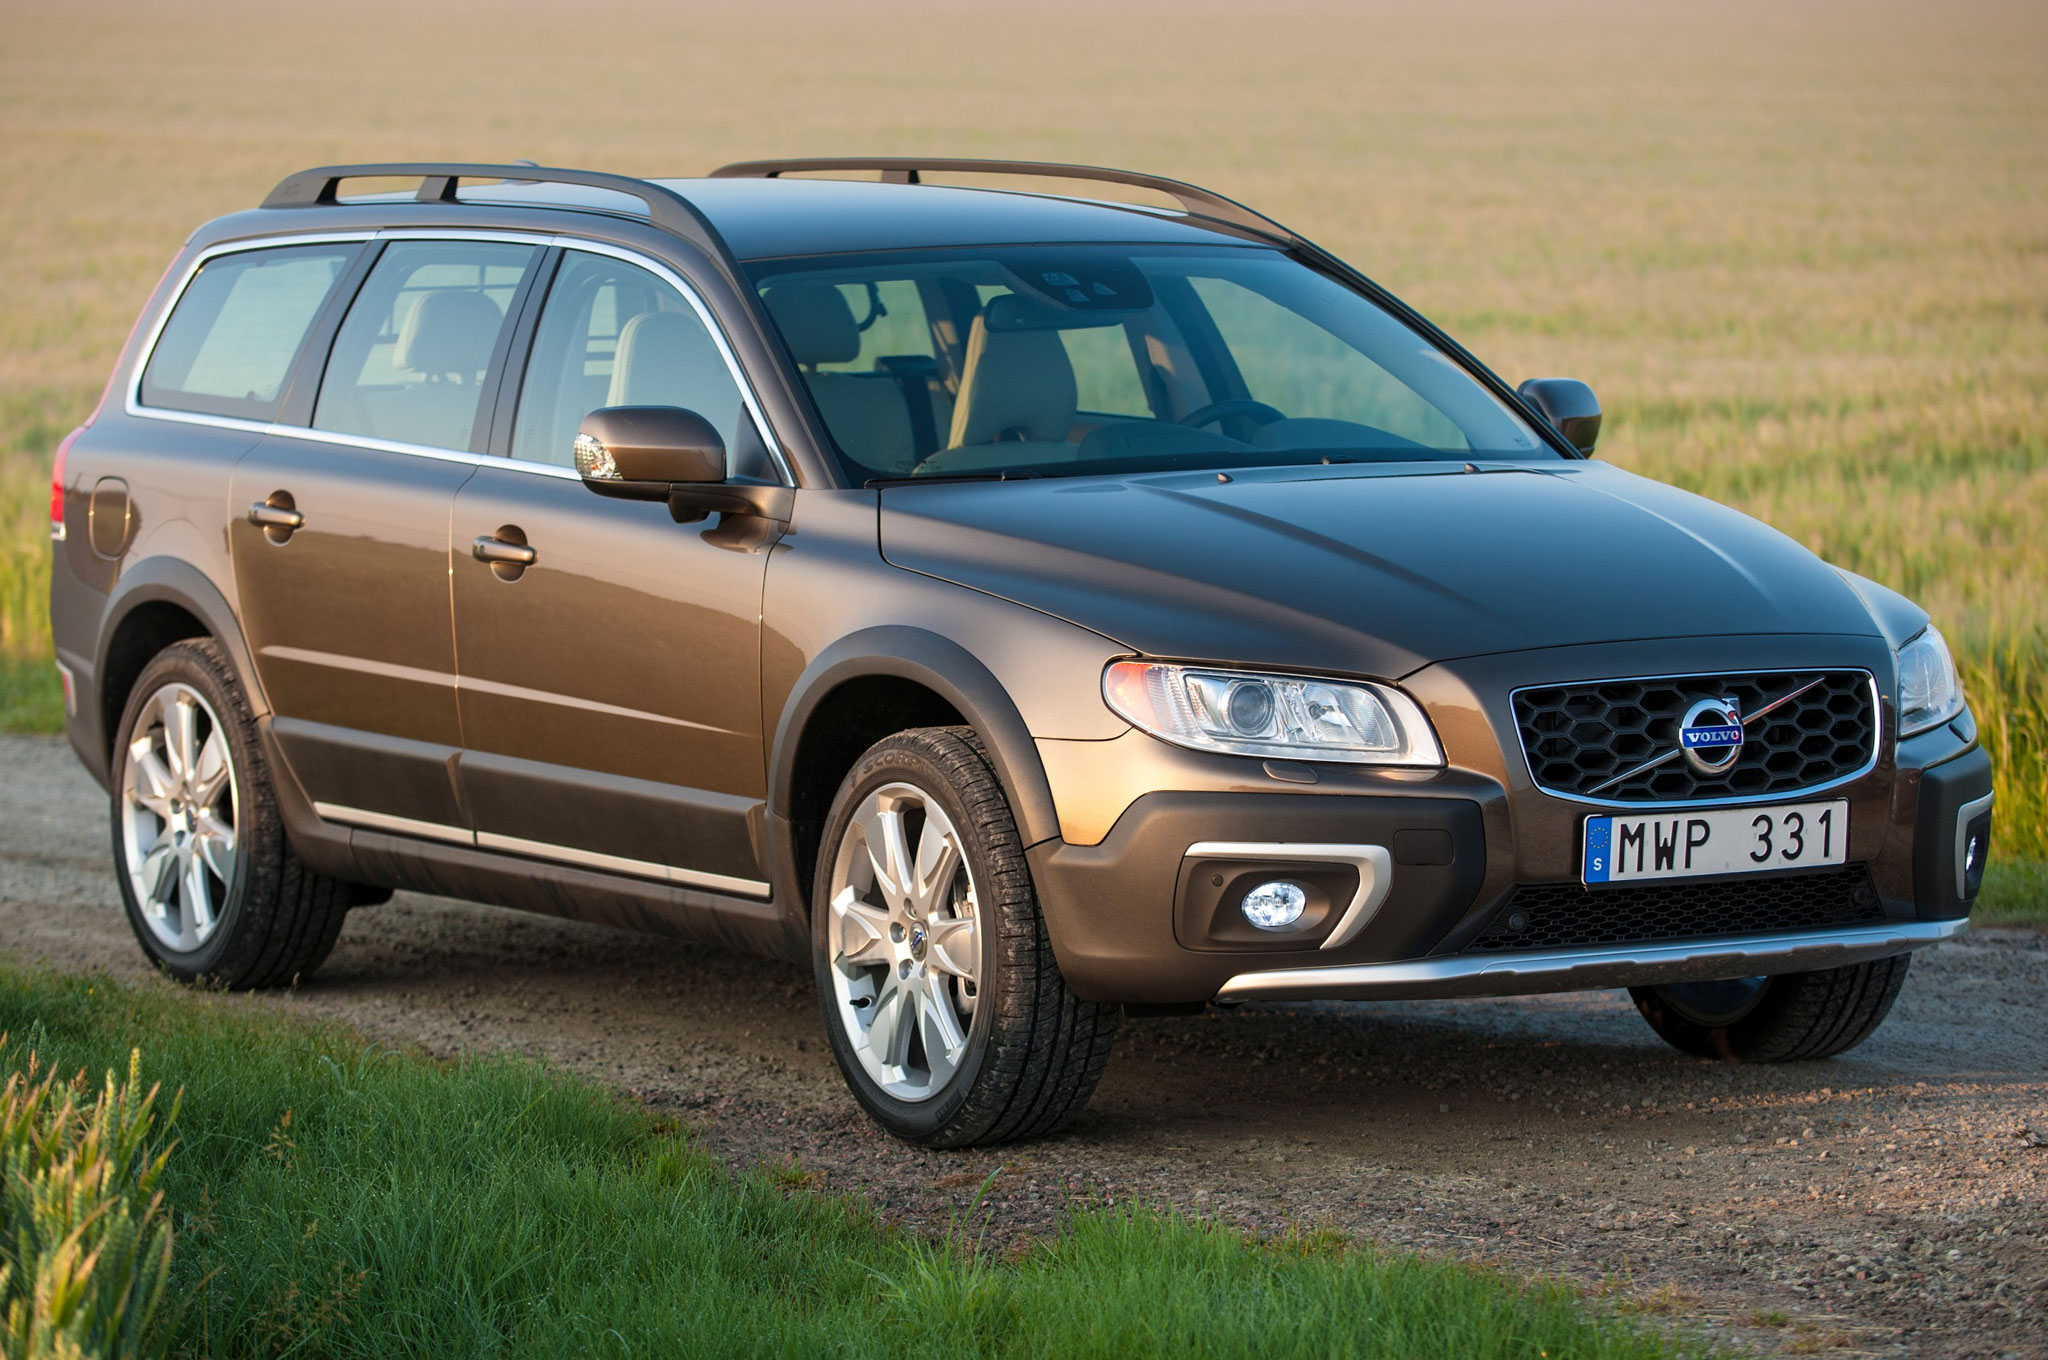 2014-volvo-xc70-front-view.jpg